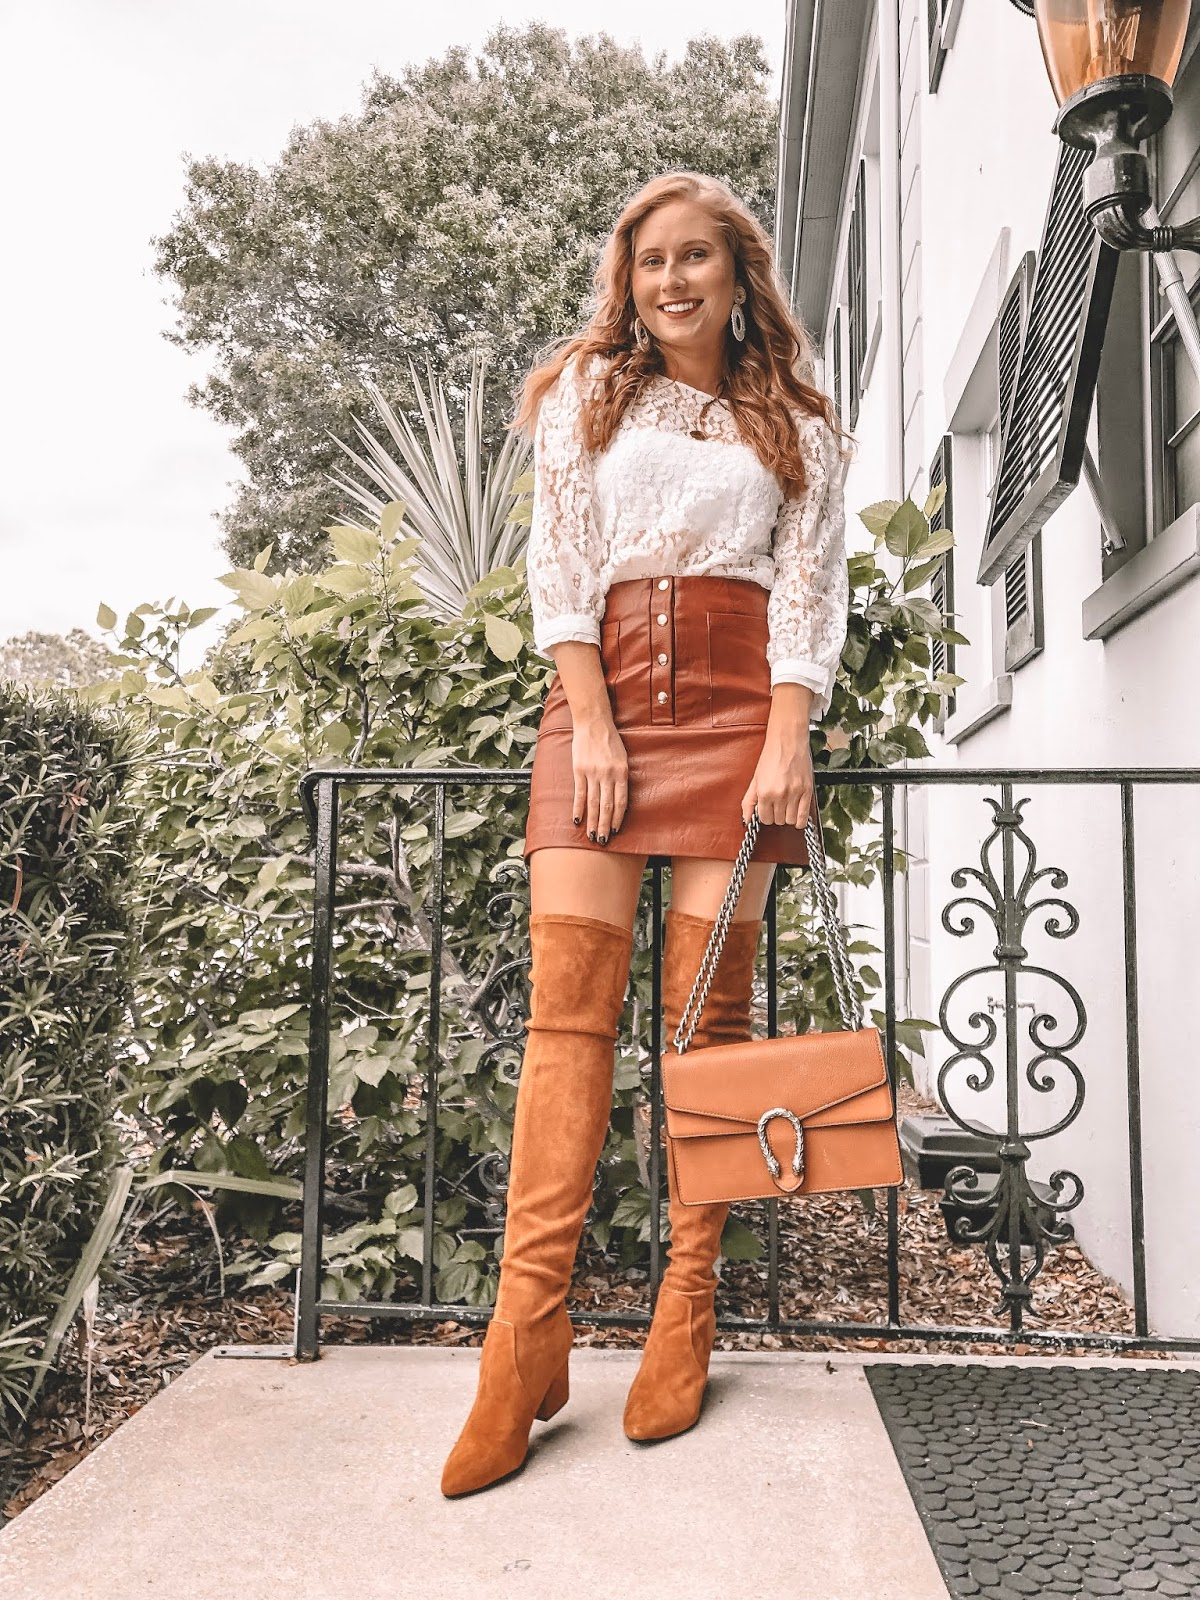 St Pete blogger Amanda Burrows is wearing a faux leather skirt and white lace top. She is also wearing a pair of over the knee boots and is holding a Gucci bag in her hand.